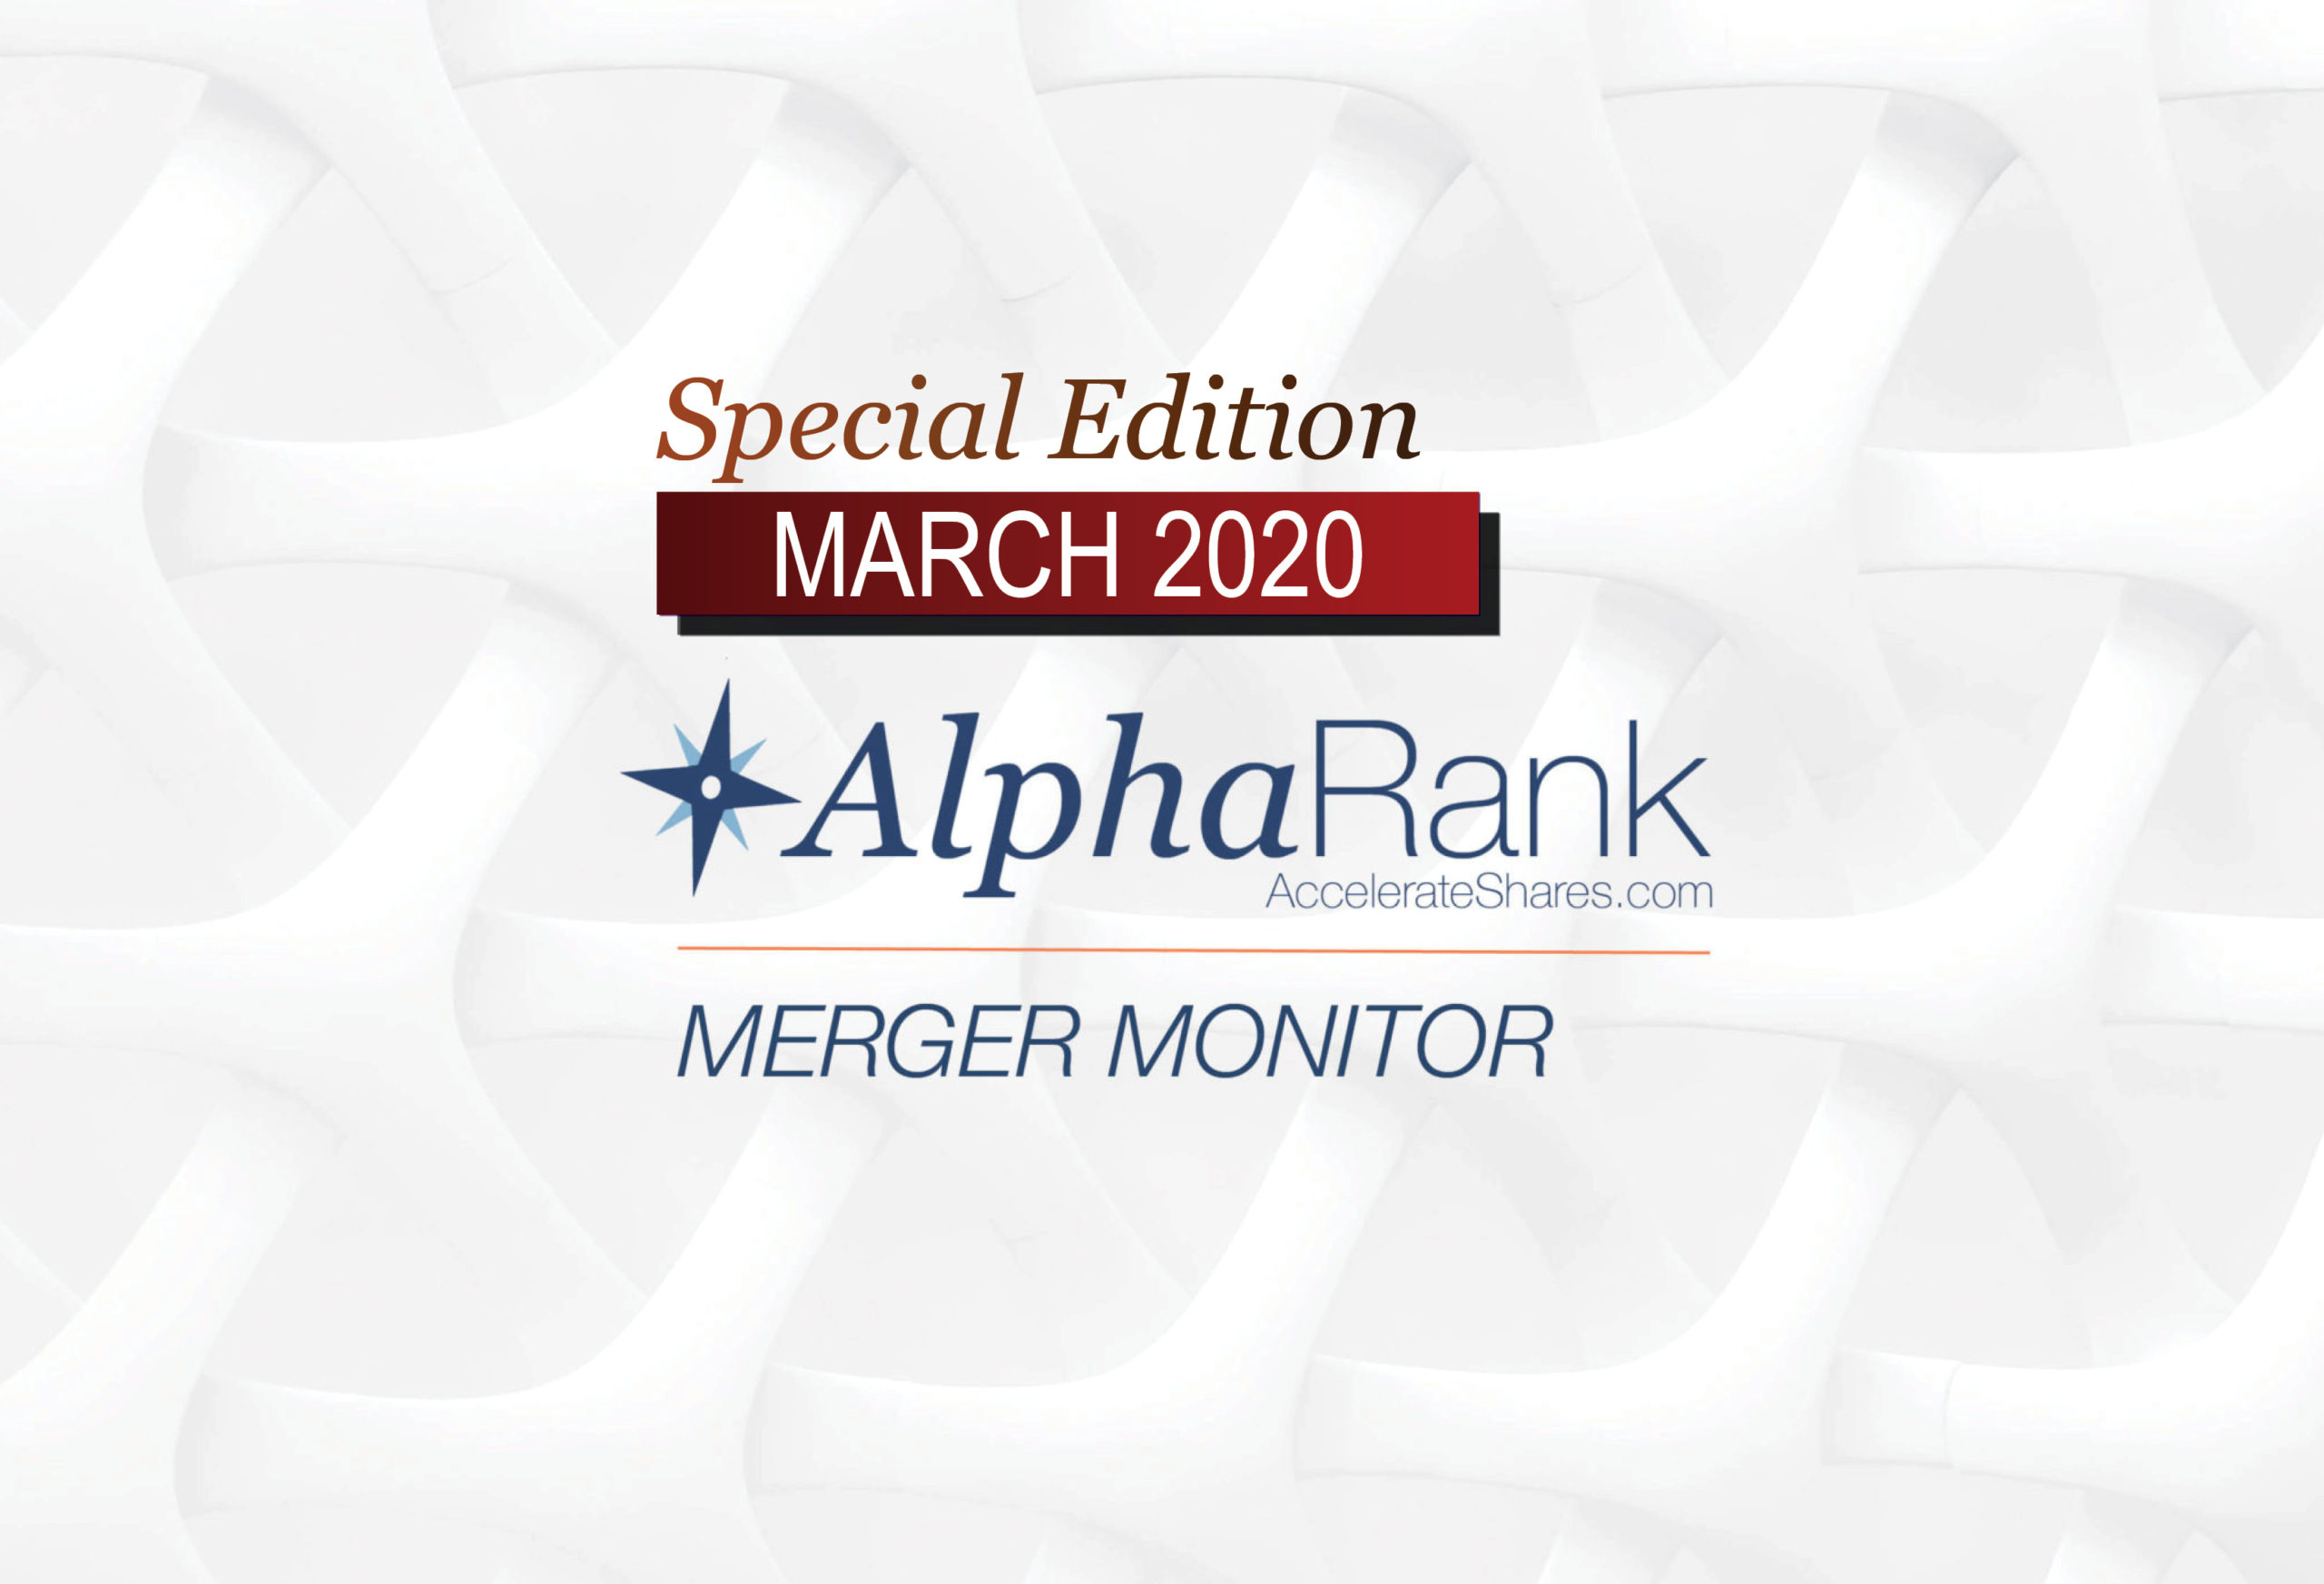 Special Edition of AlphaRank Merger Monitor – March 2020